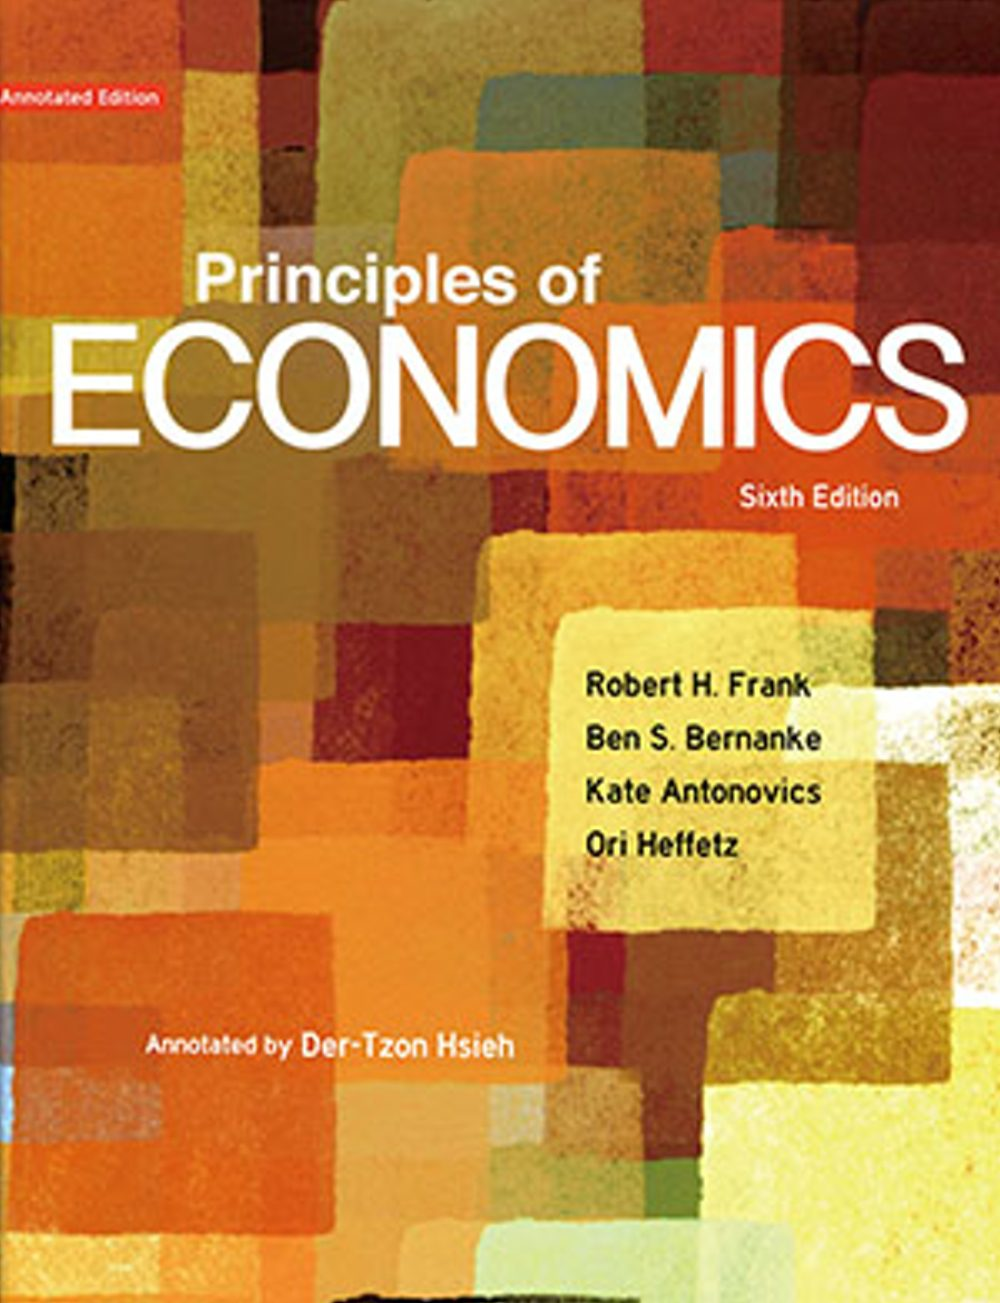 principles of economic This book is intended for a two-semester course in economics taught out of the social sciences or business school flat world knowledge is thrilled to publish a re-launch of tim tregarthen's acclaimed principles of economics book in 1996, tim published the first edition of his principles of.